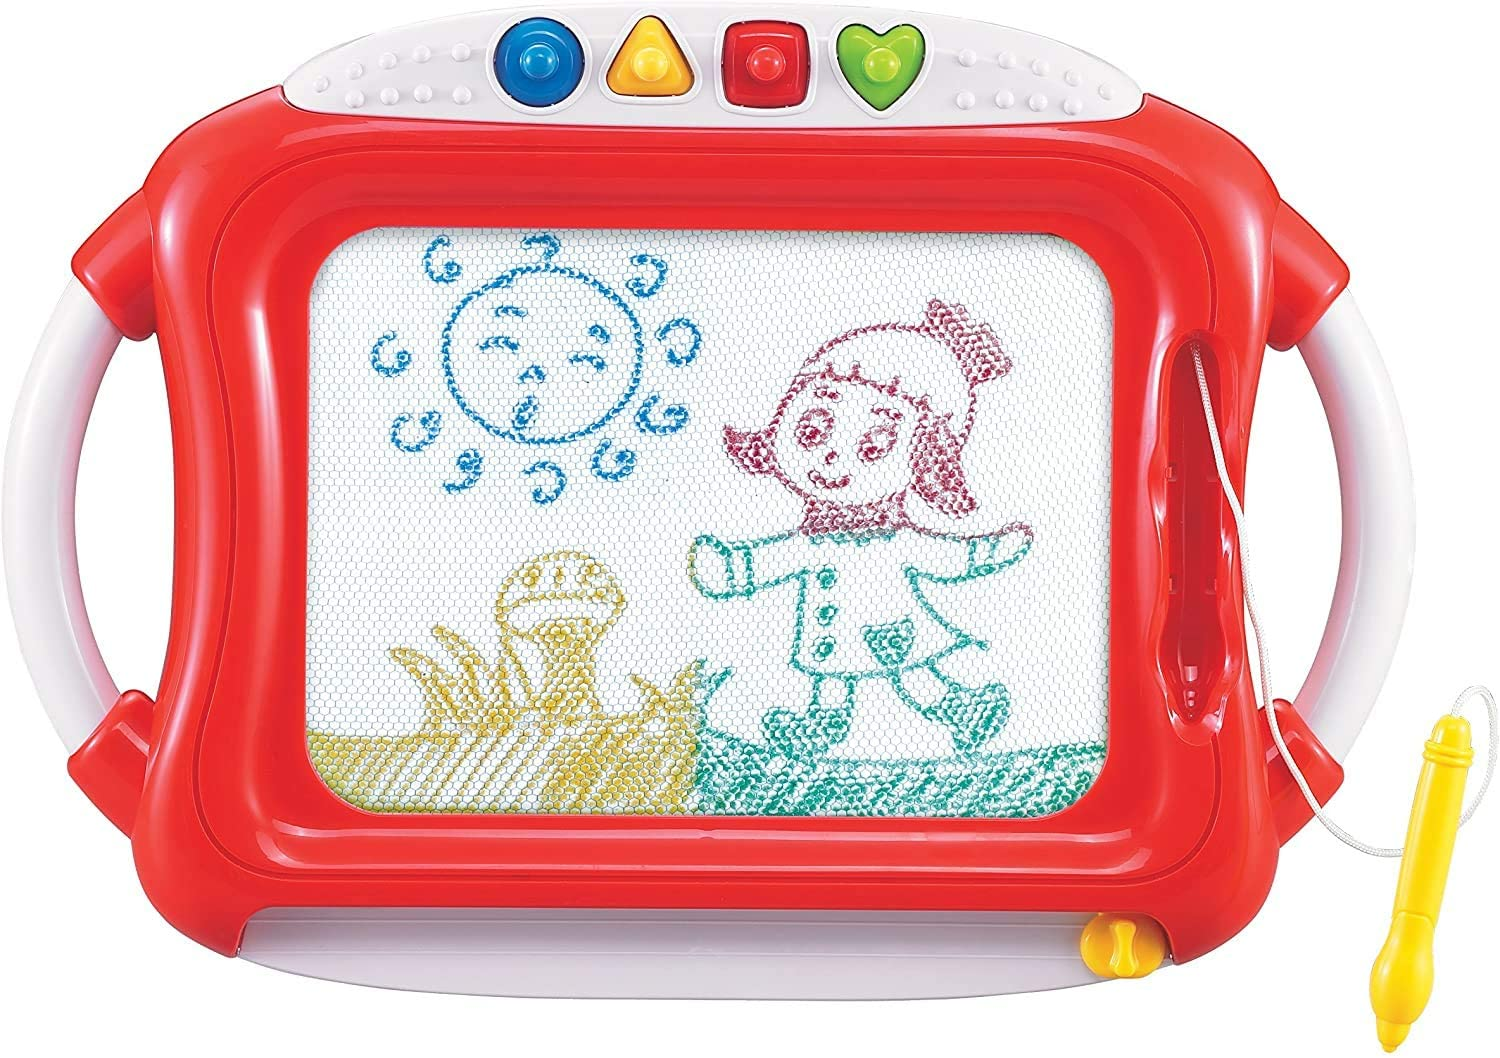 First Classroom Magnetic Color Doodle Fun Drawing Board Set - Learning Education Interactive Activity Toy - Writing Learning Tool - Touch and Stimulation - Sketch Pad for Kids & Toddlers.